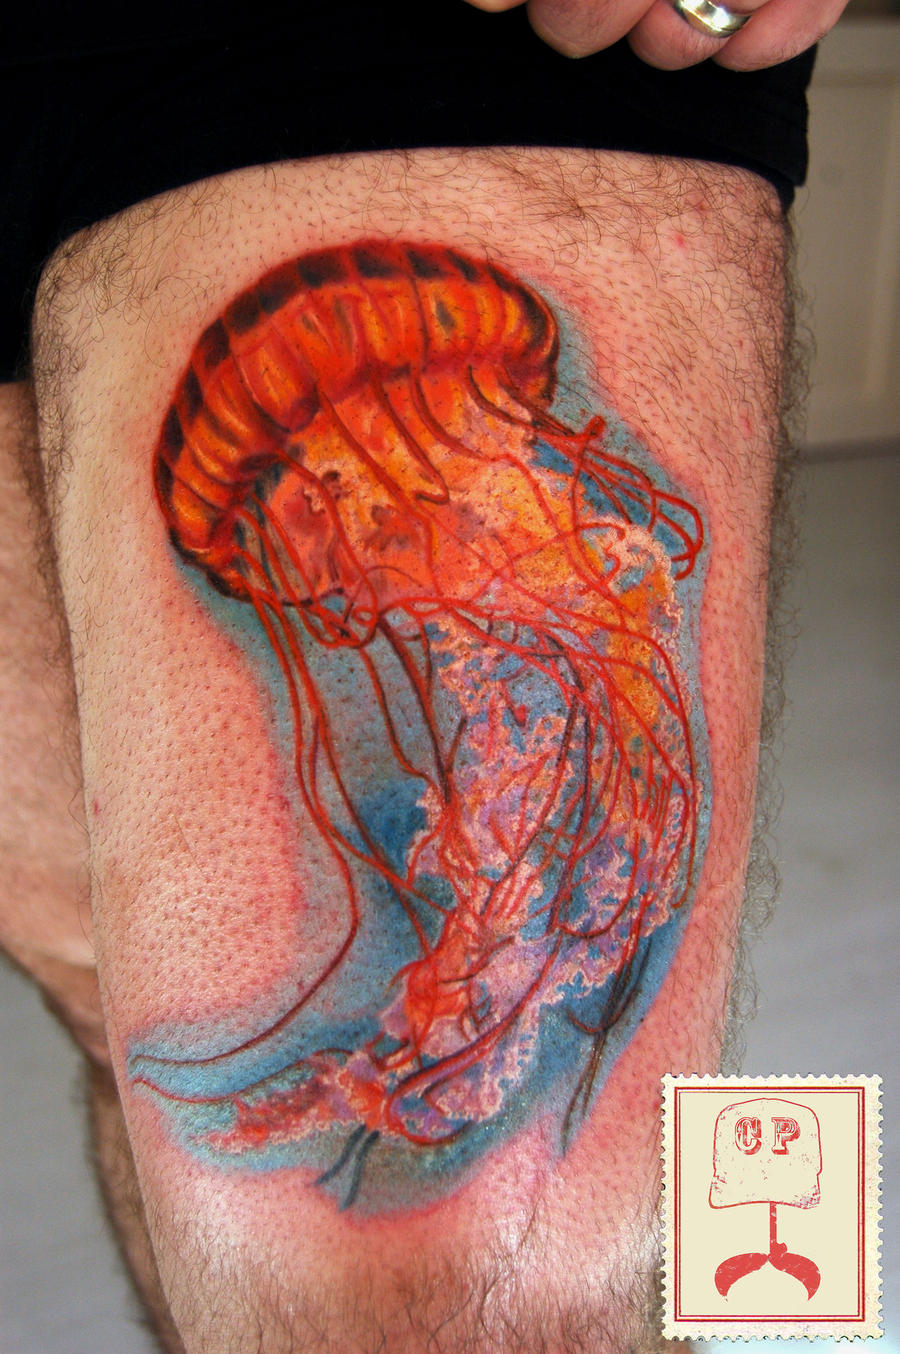 jellyfish tattoo by art-emis on DeviantArt